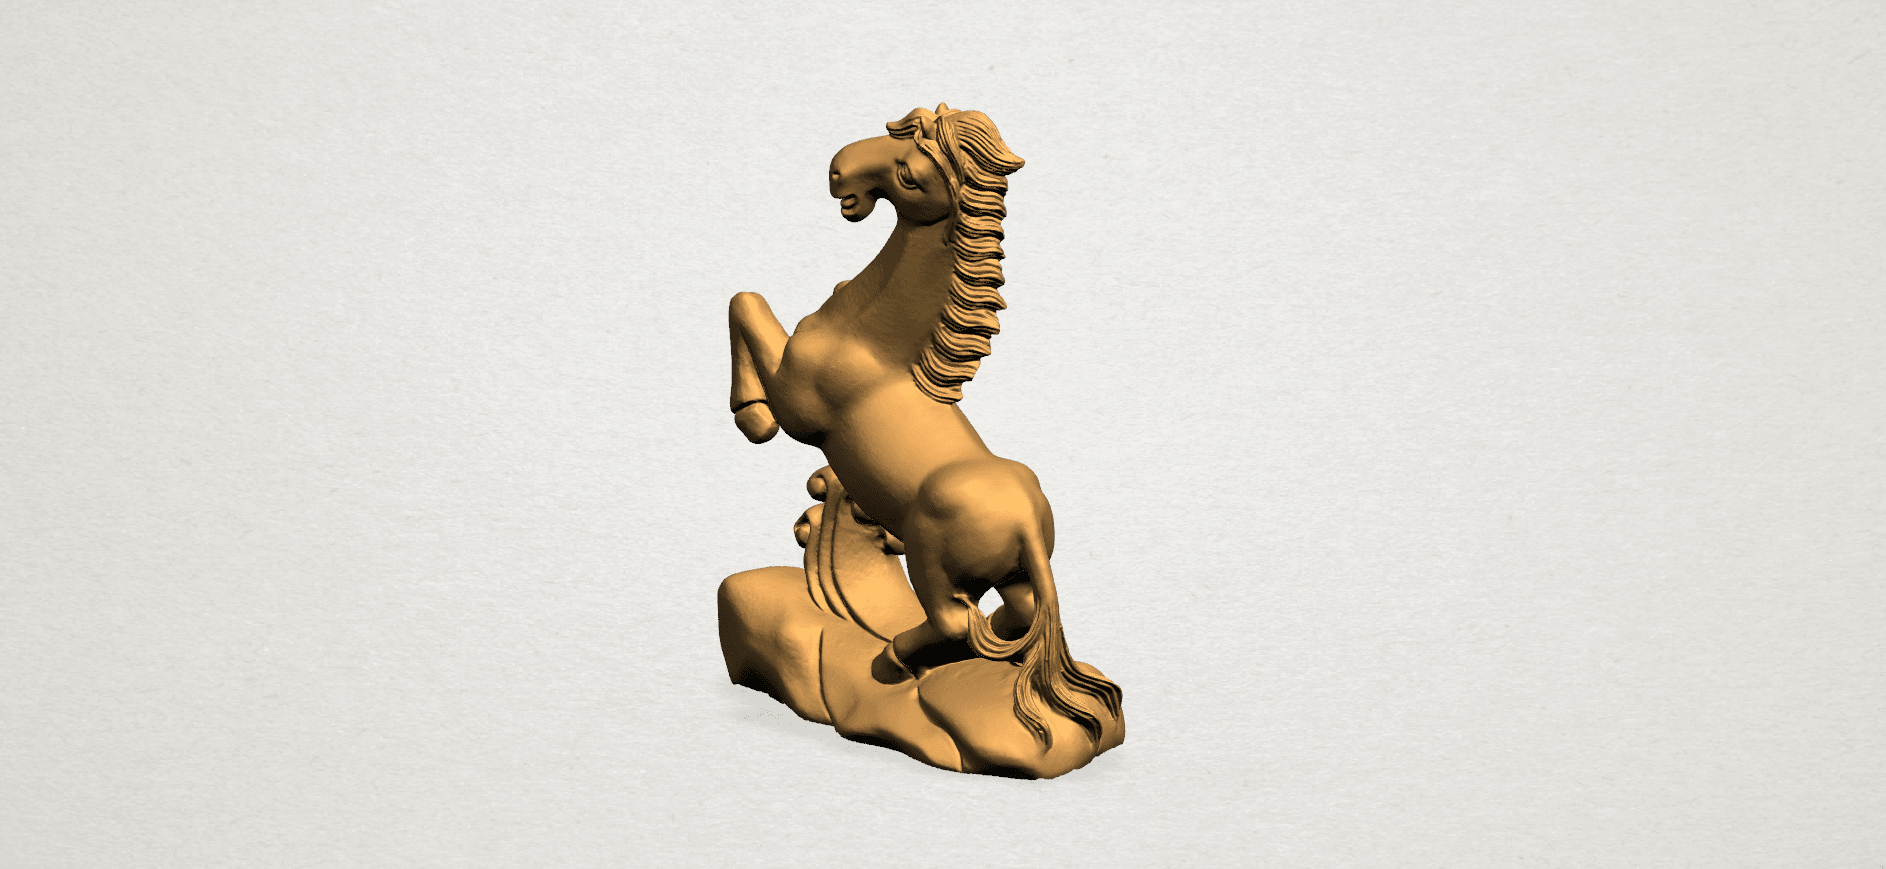 Chinese Horoscope07-A04.png Télécharger fichier STL gratuit Horoscope Chinois 07 Cheval Chinois • Design imprimable en 3D, GeorgesNikkei